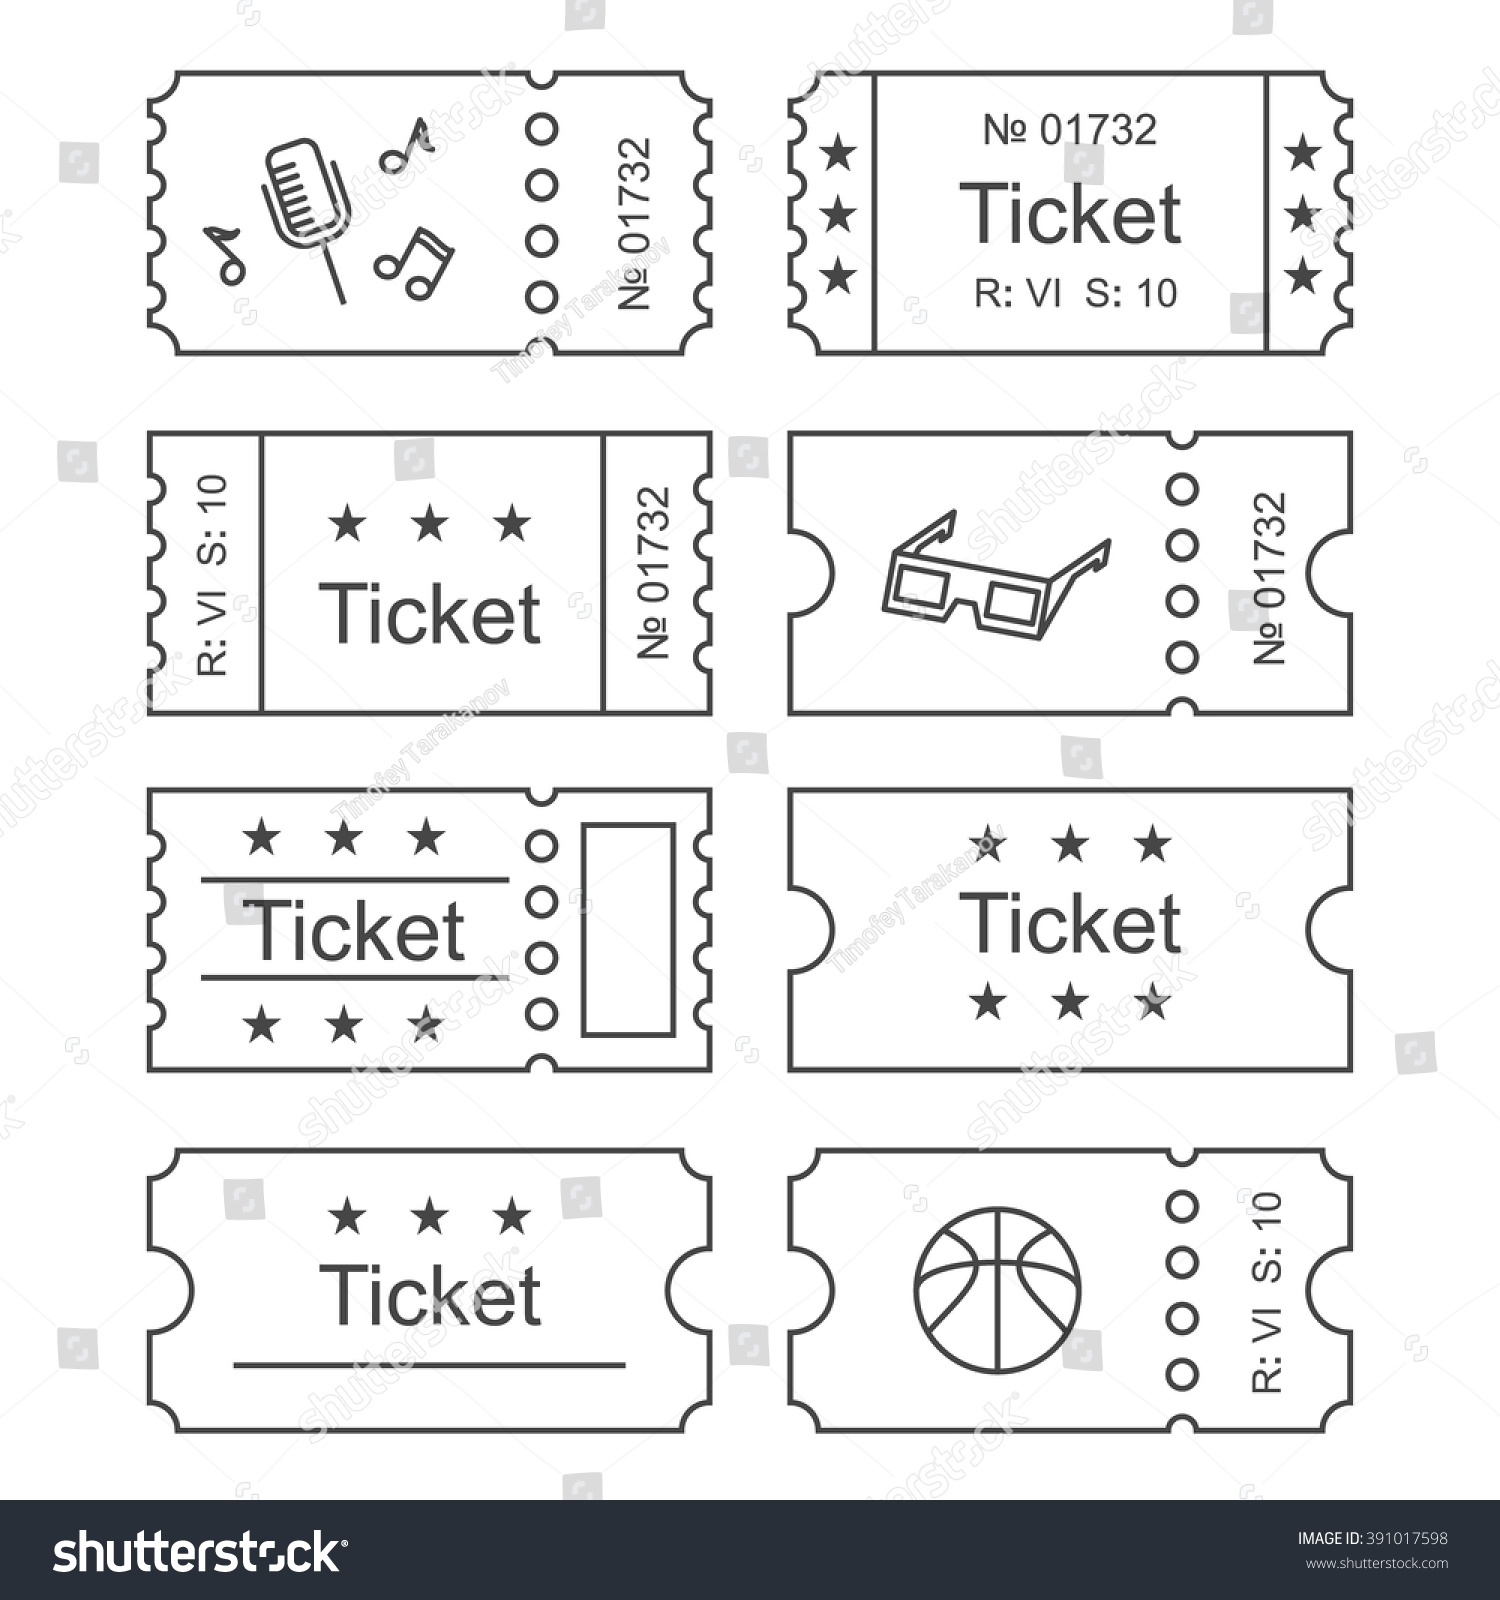 ticket icon outline style vector illustration stock vector ticket icon in the outline style vector illustration ticket stub isolated on a background